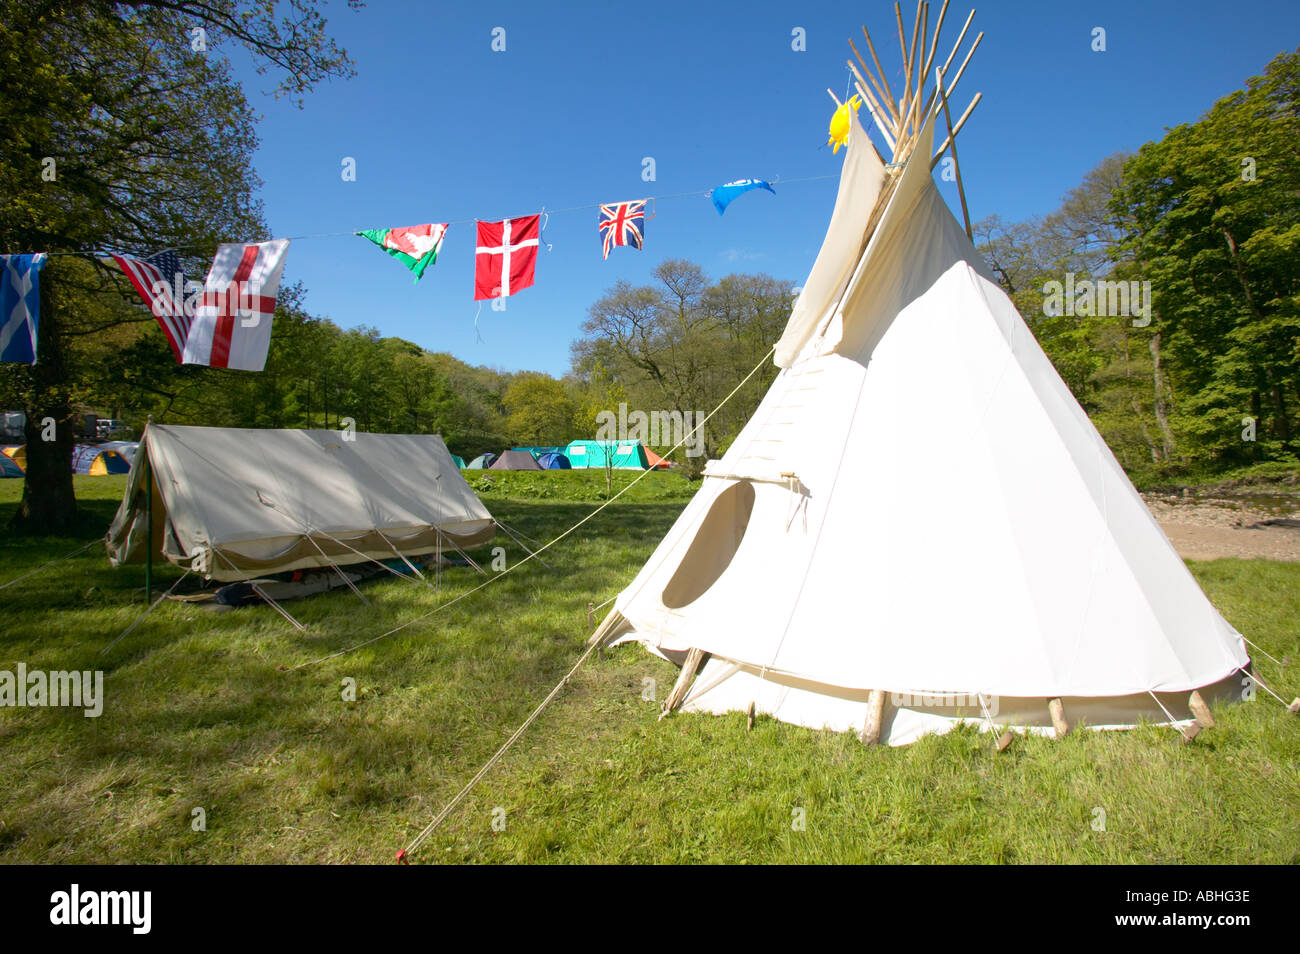 A traditional North American tipi teepee being used on a scout camp - Stock Image